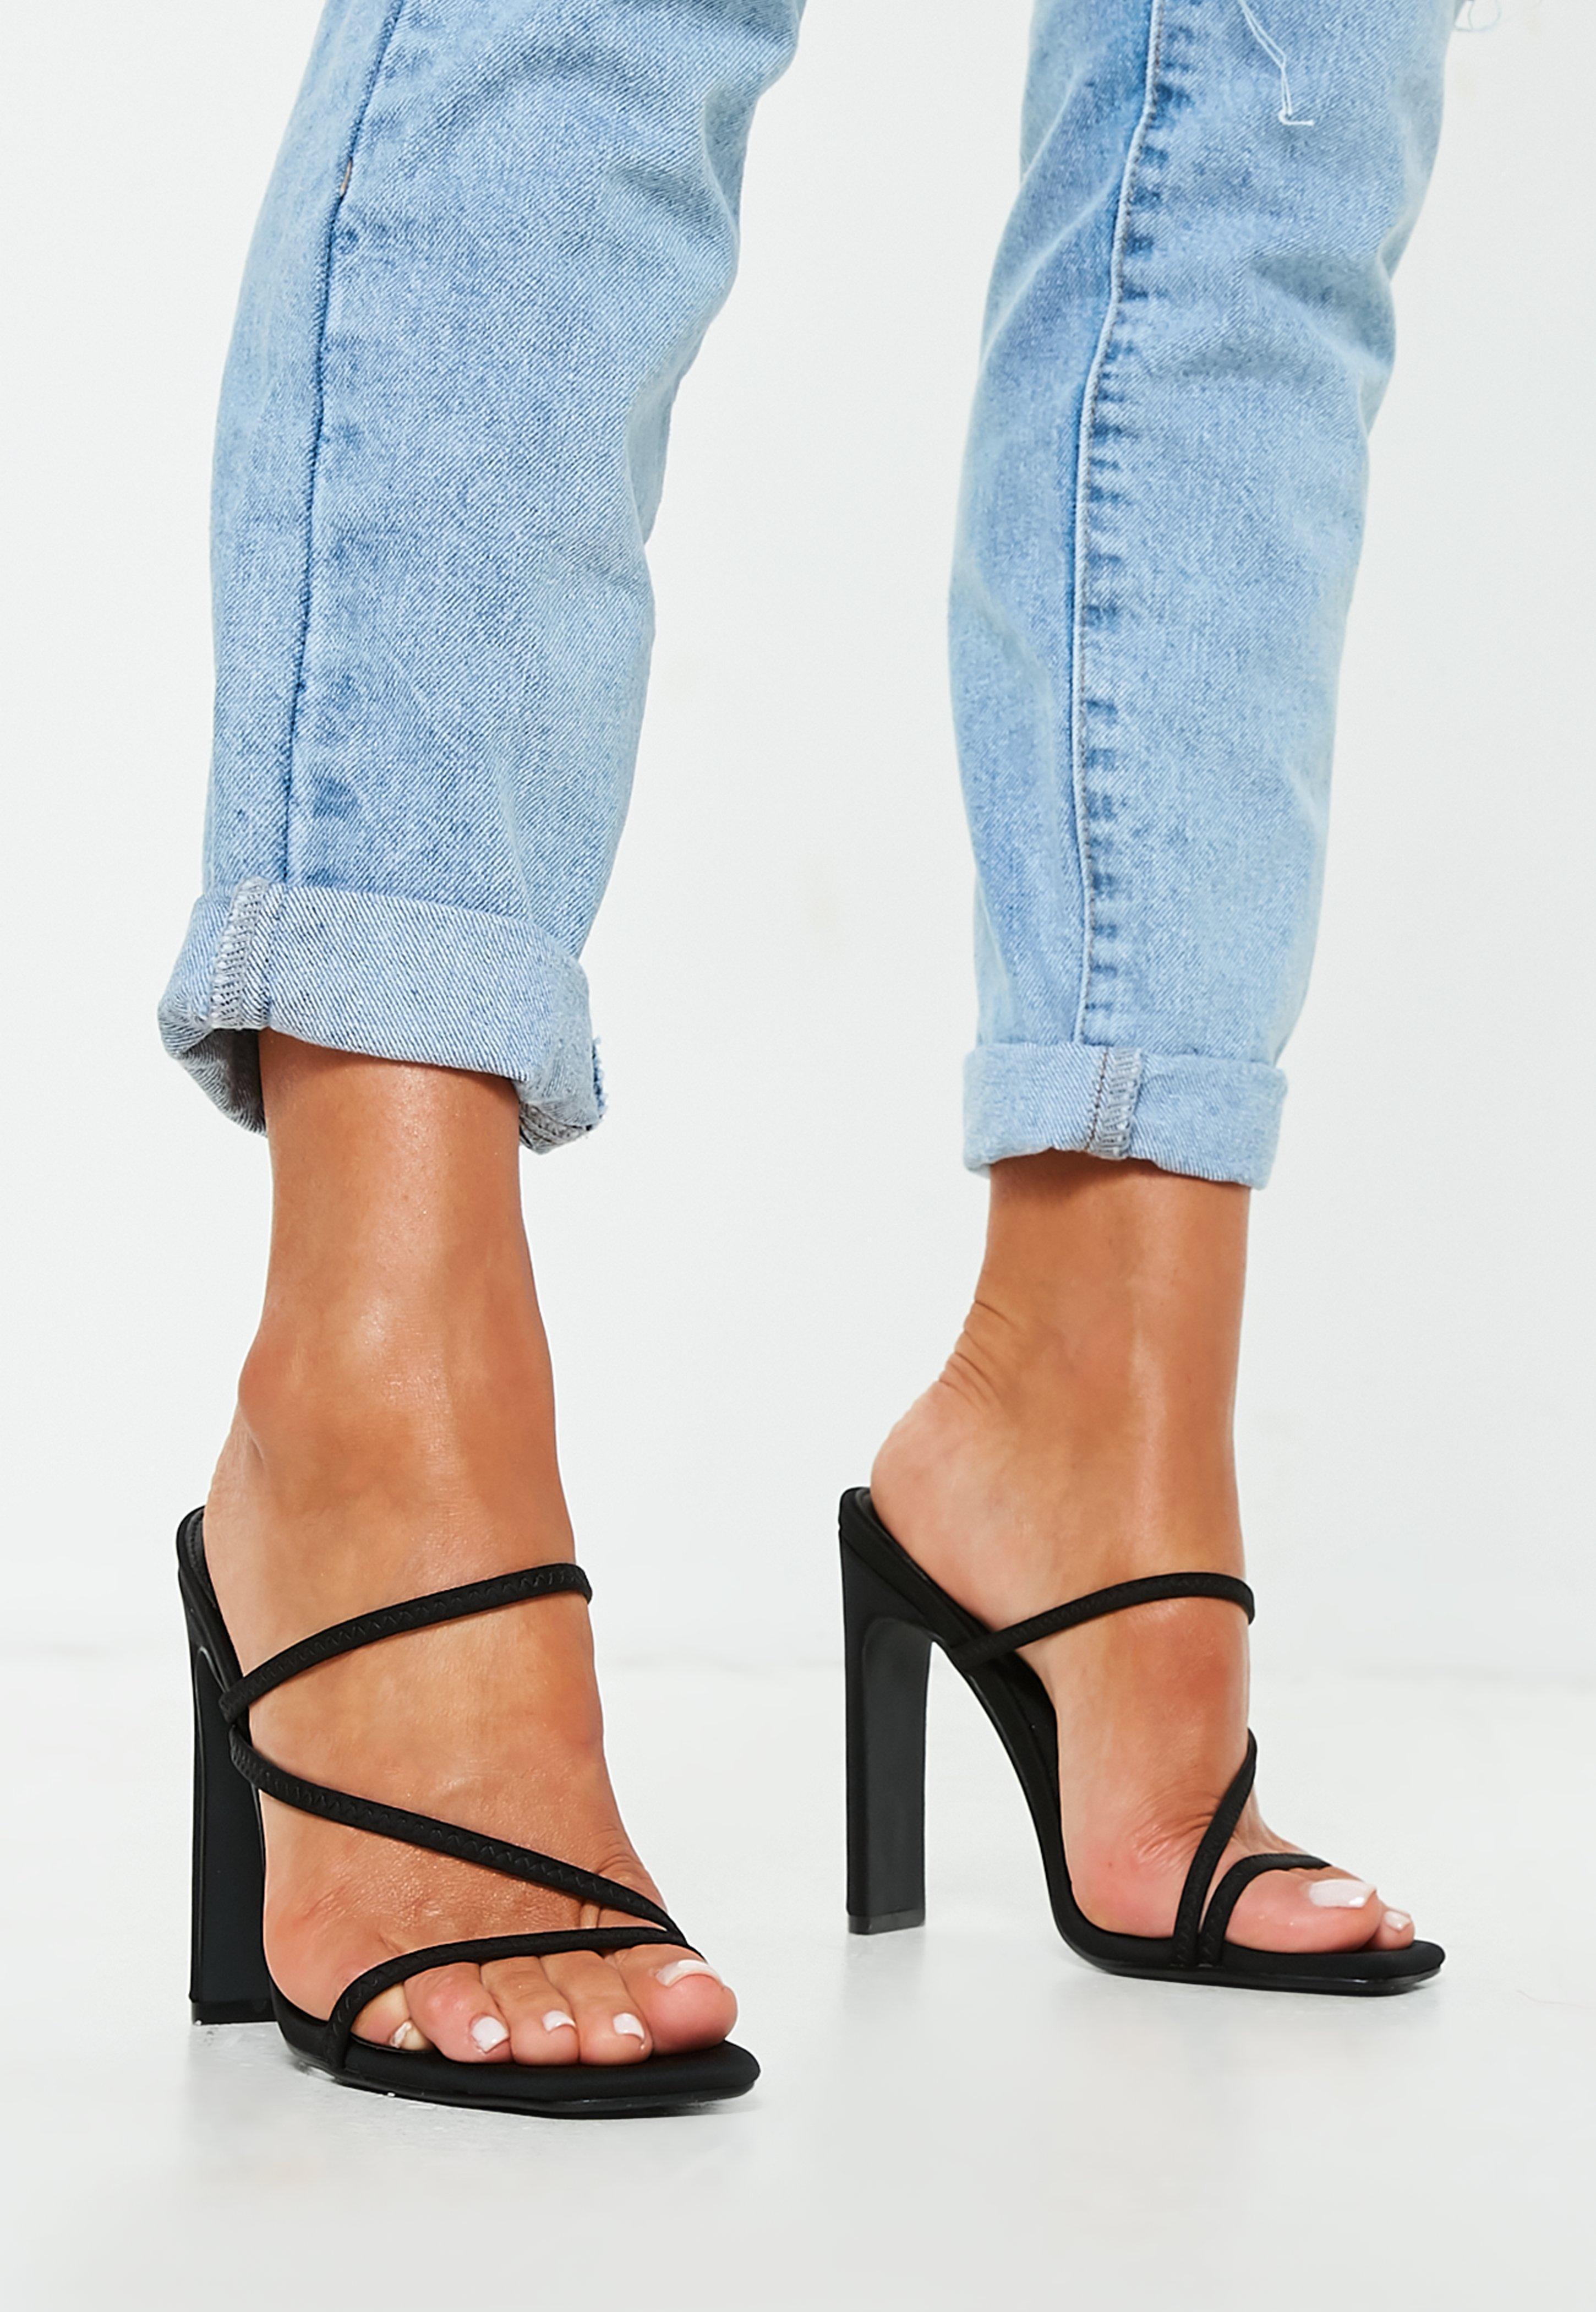 151075d94b84 Lyst - Missguided Black Multi Strap Mules in Black